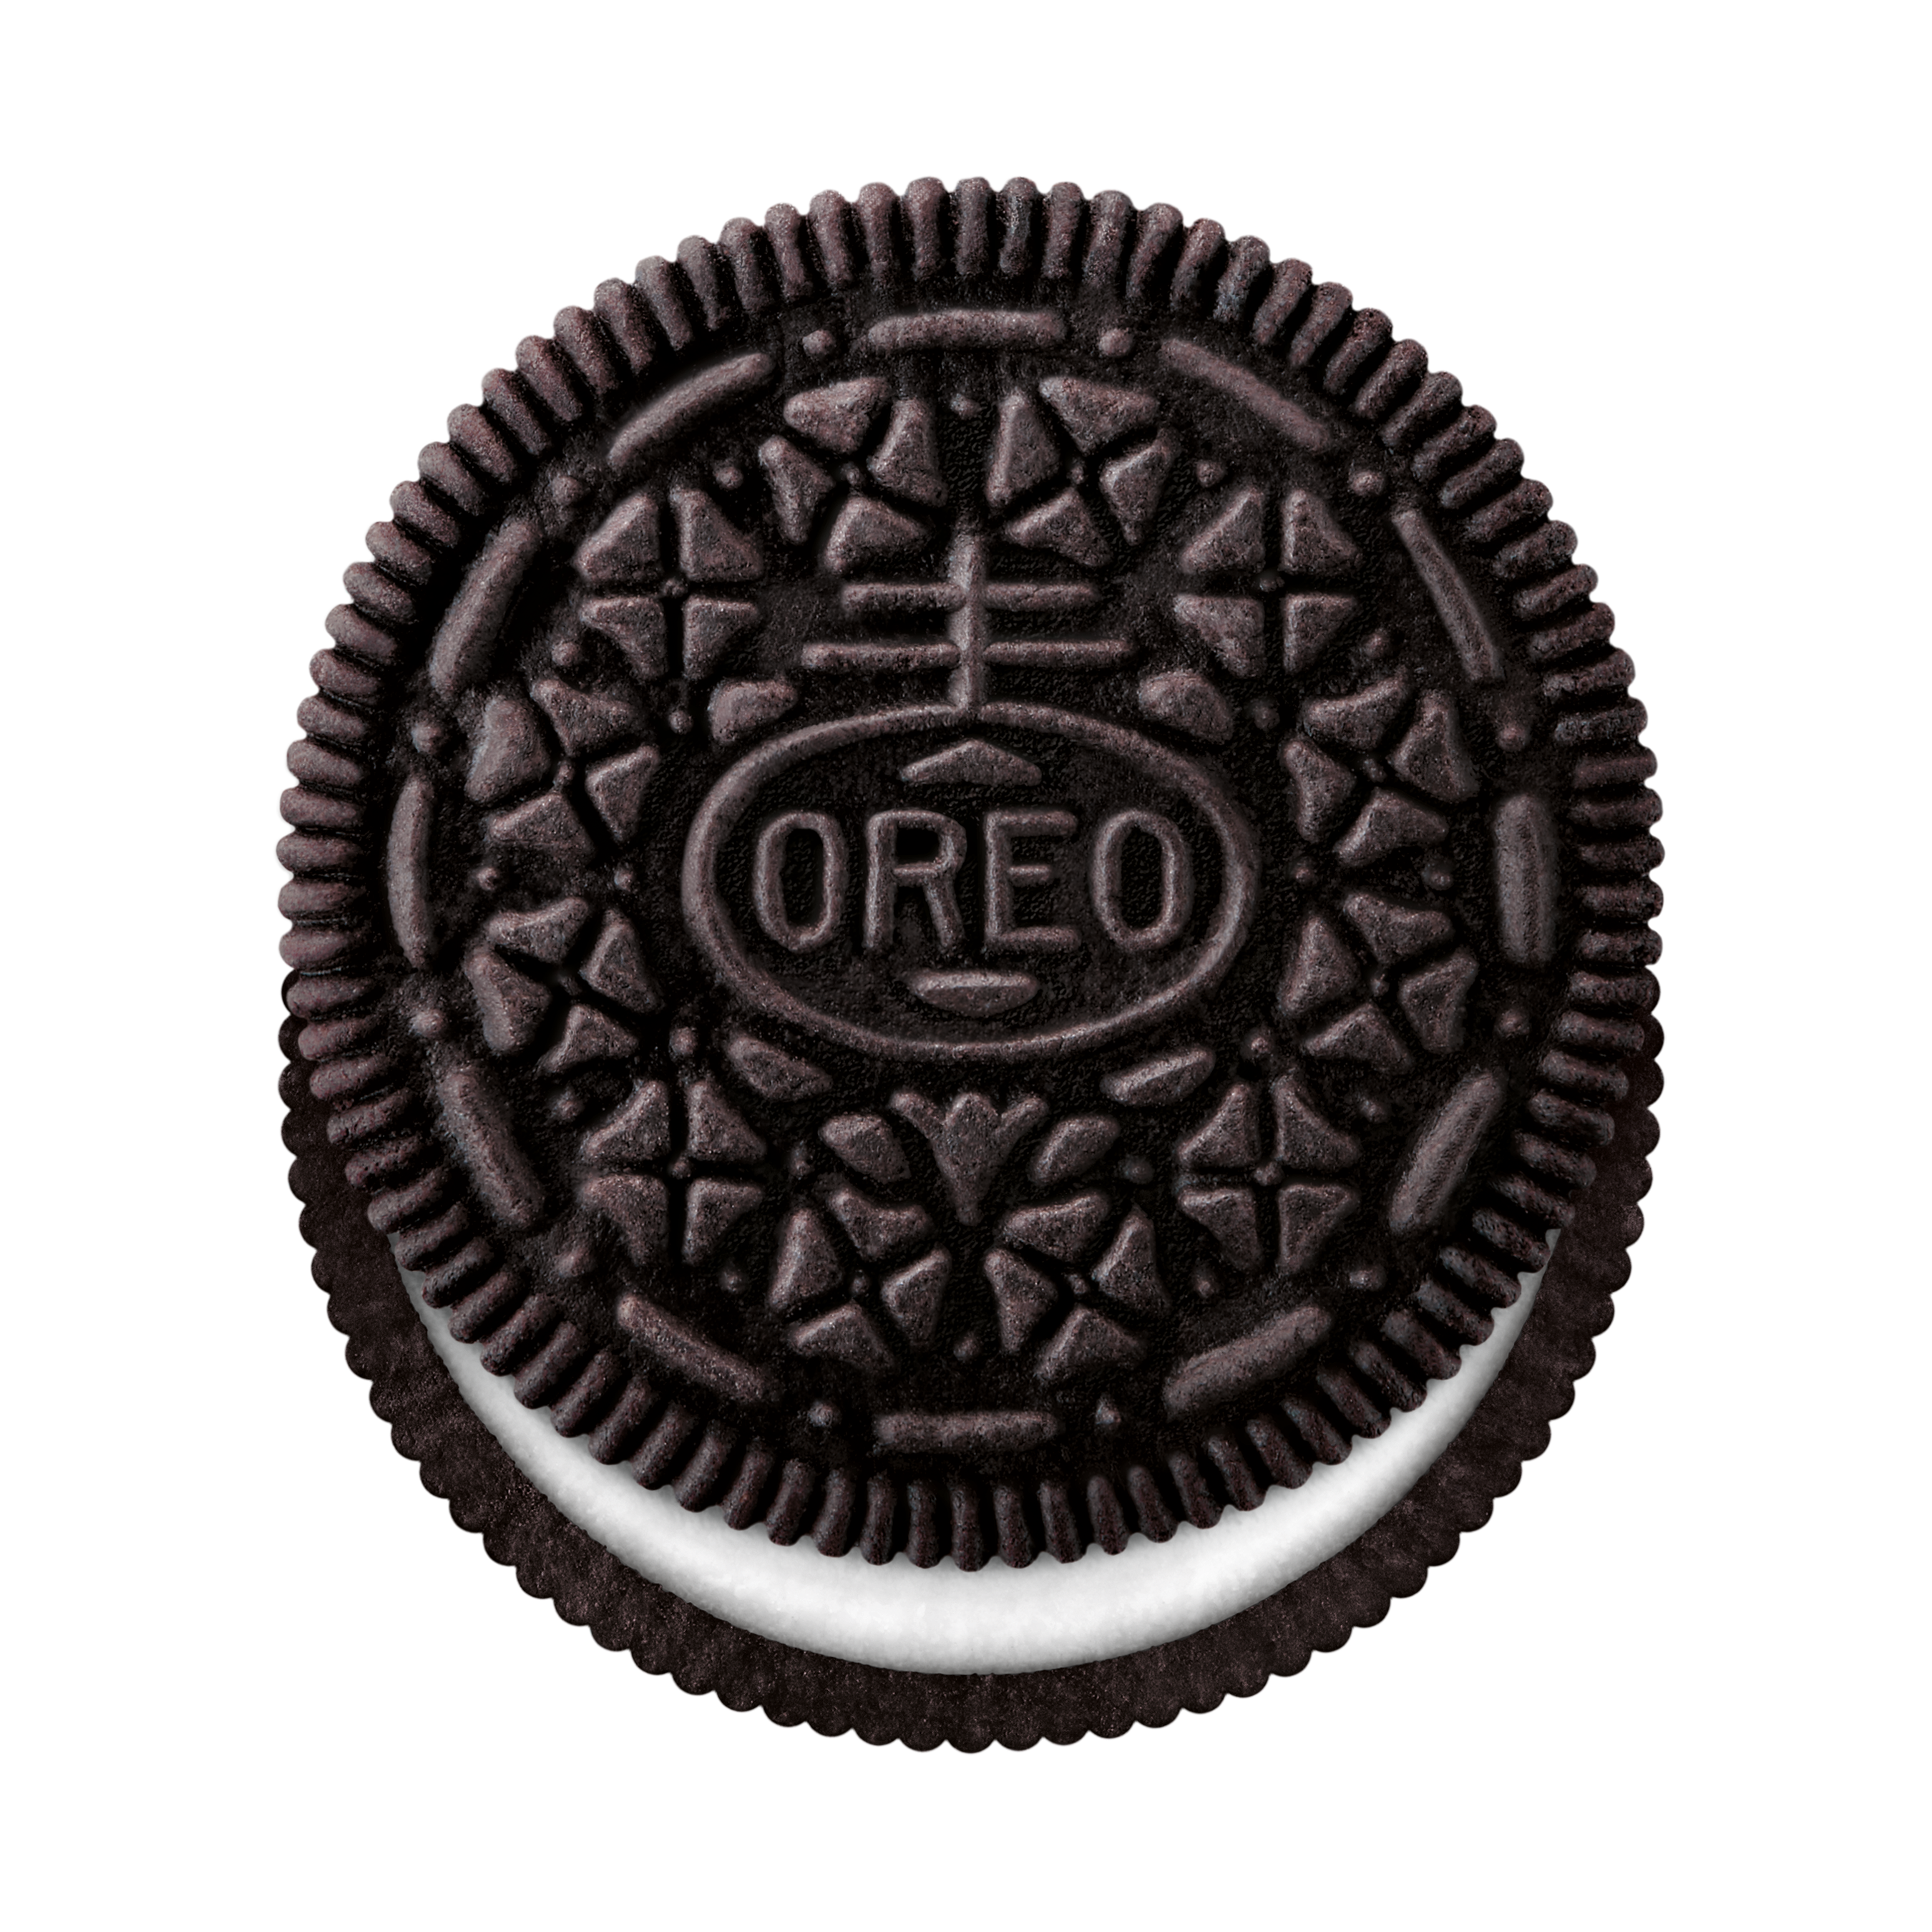 Free Oreo Cookies Cliparts, Download Free Clip Art, Free.